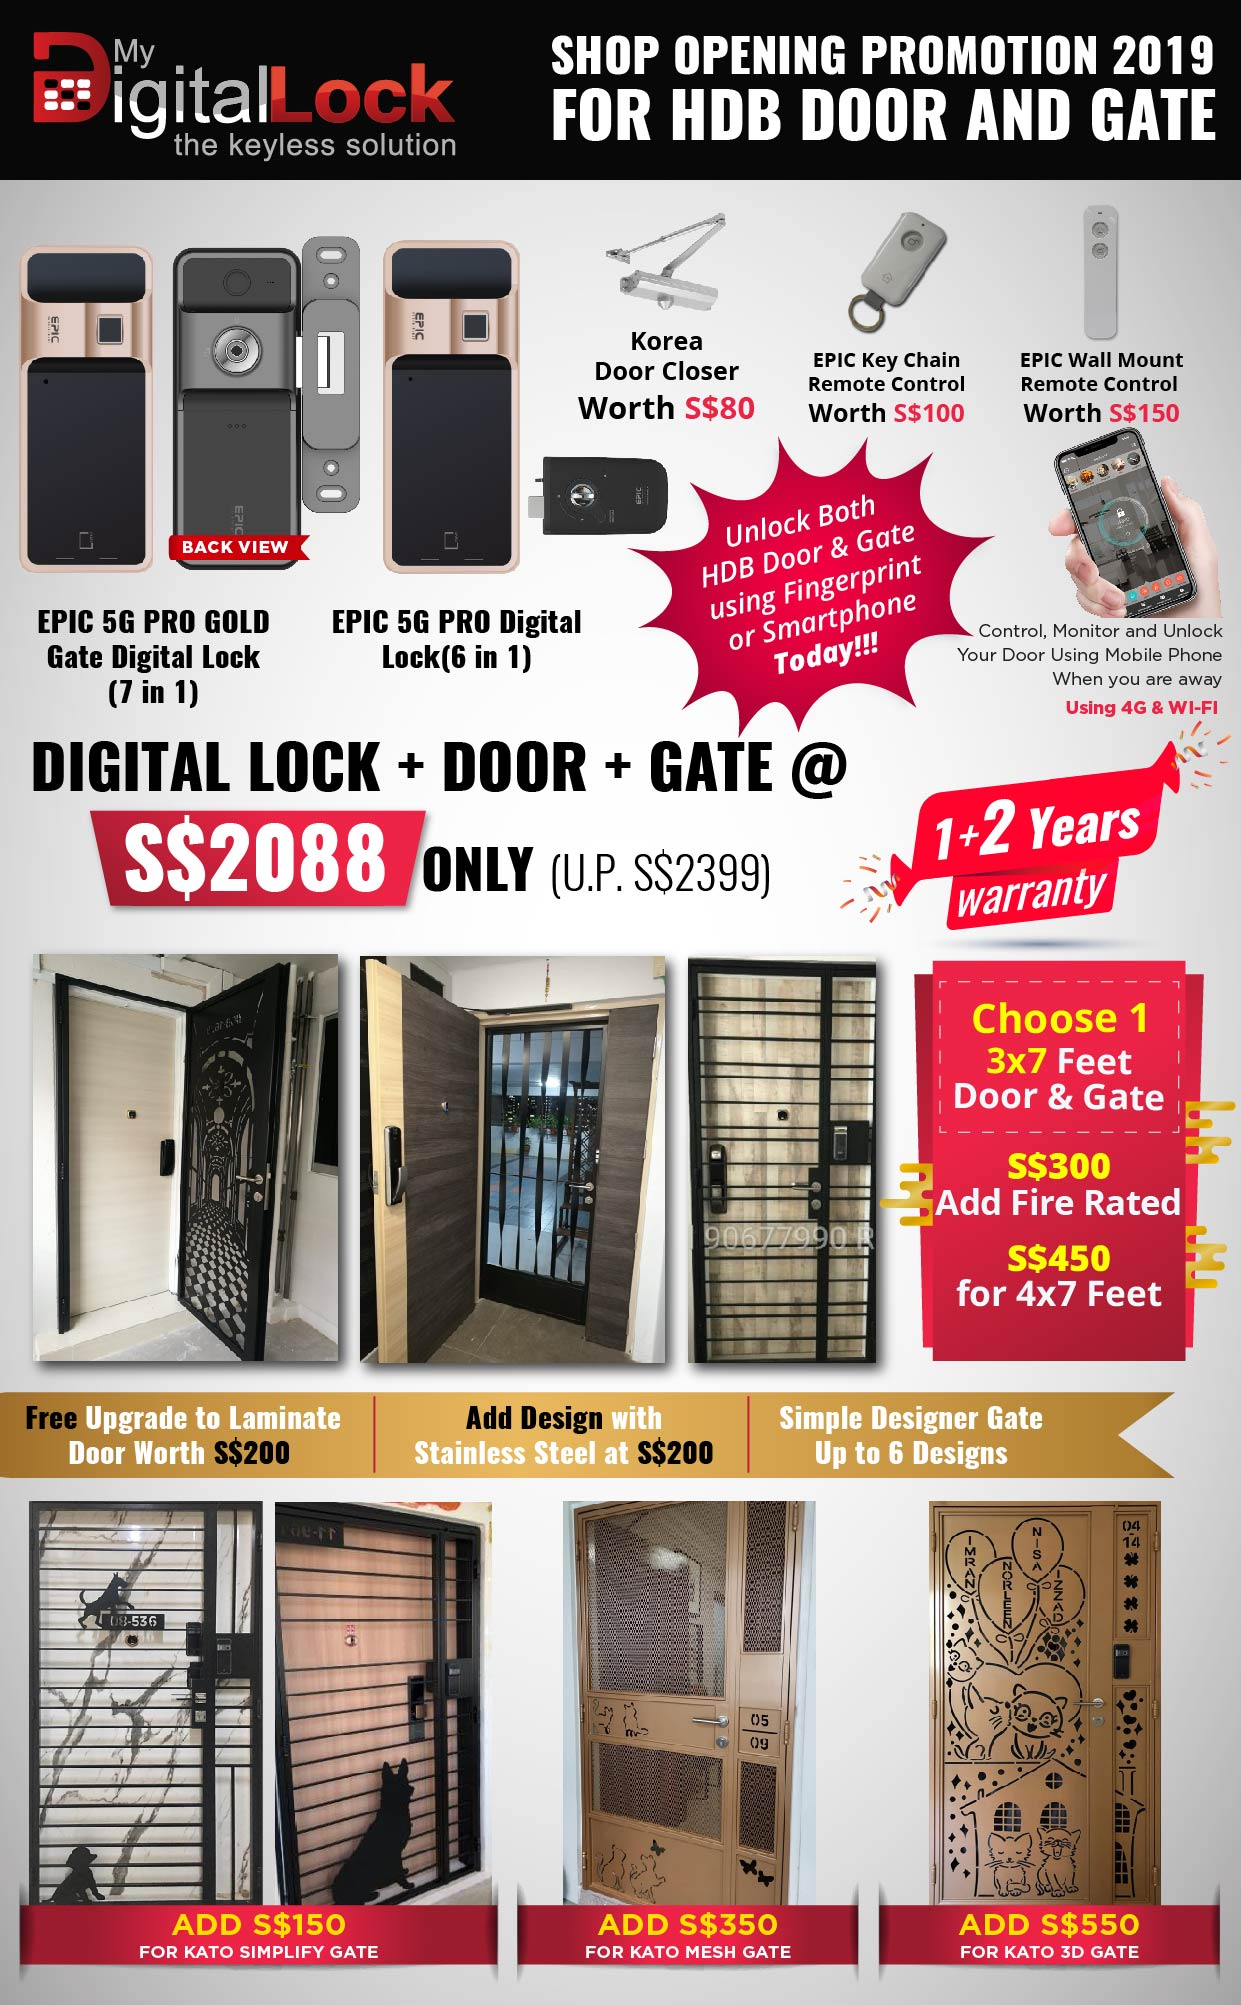 Buy Door and Gate @ My Digital Lock. Call 9067 7990